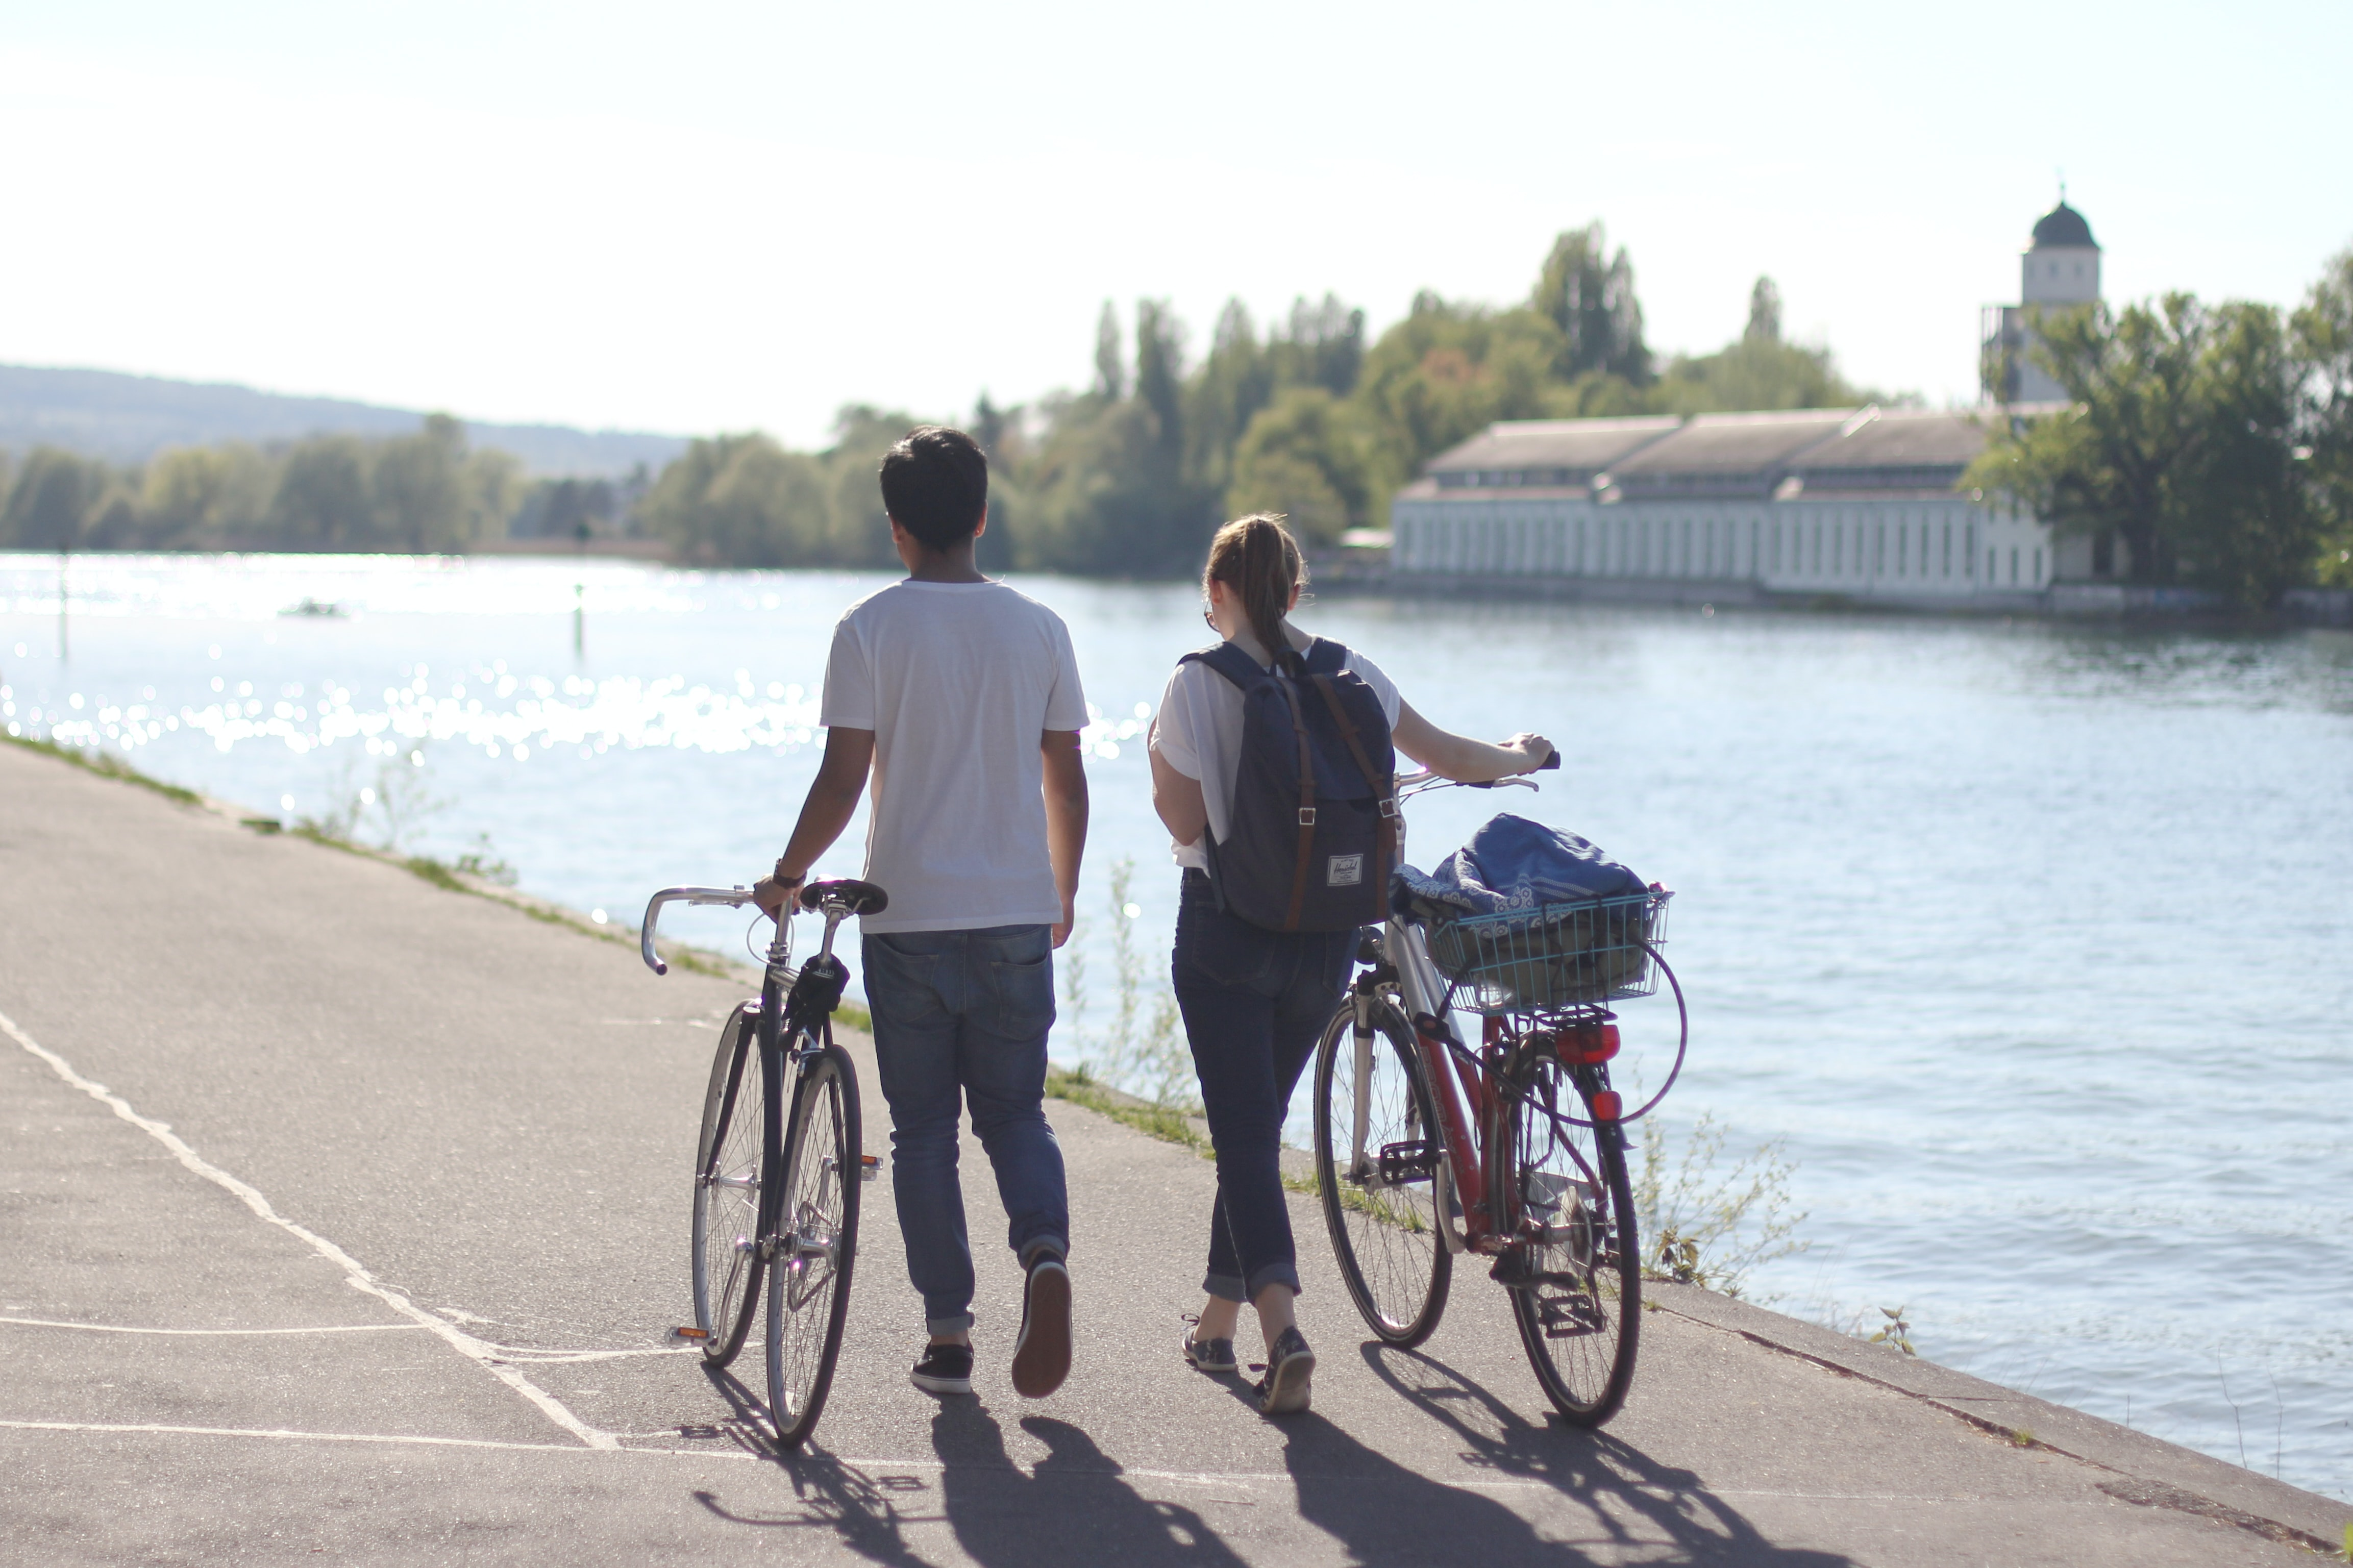 man and women walking holding their bicycles beside body of water